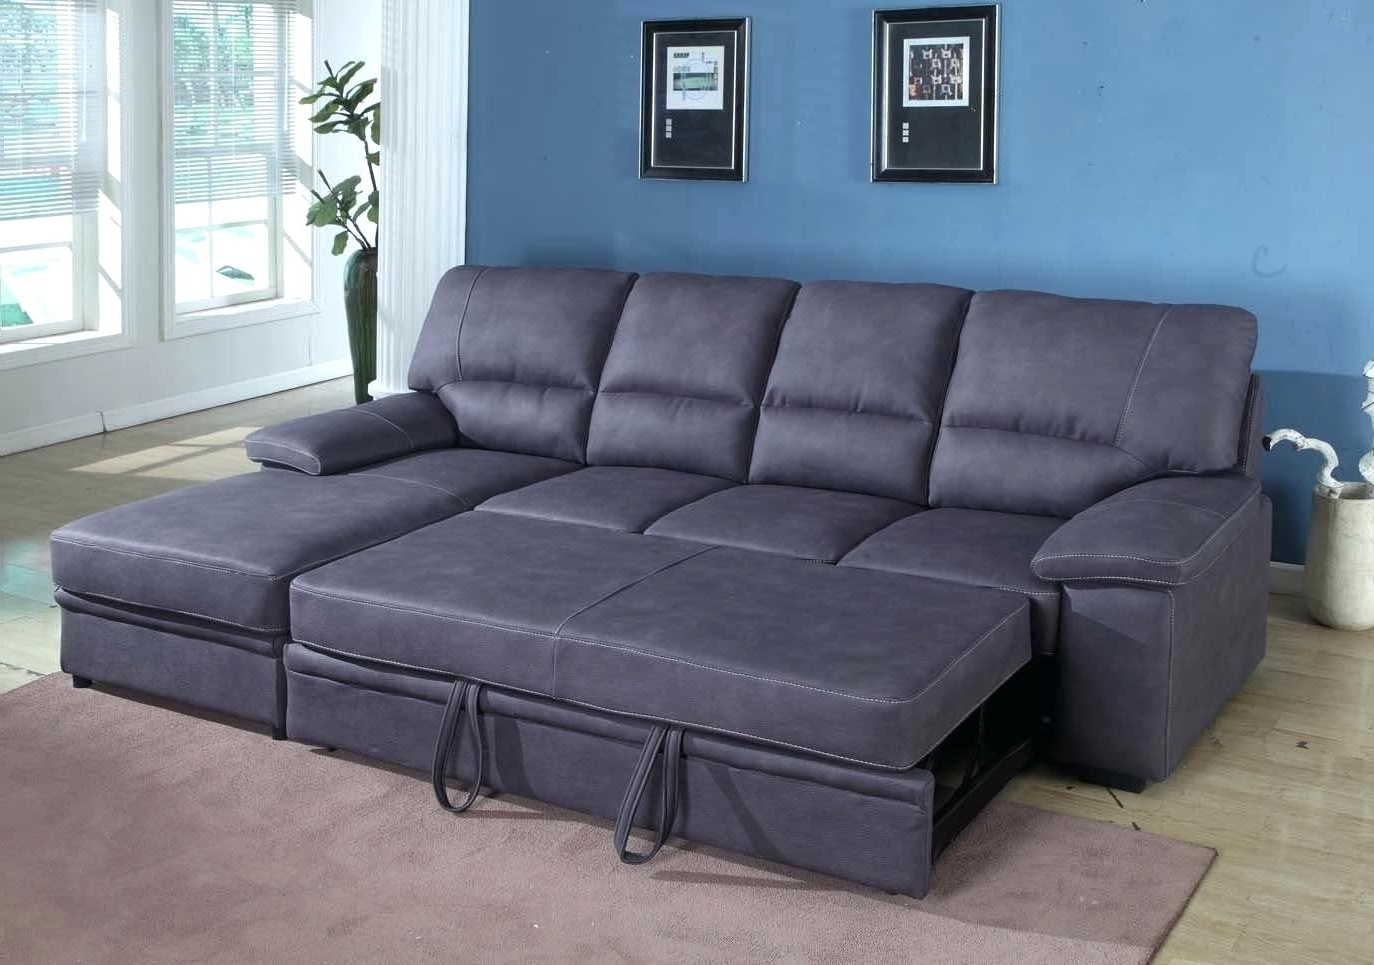 Most Recently Released Decoration: Small Sofa Beds For Spaces Image Of Sectional Sofas Regarding Sectional Sofas In Philippines (View 9 of 20)